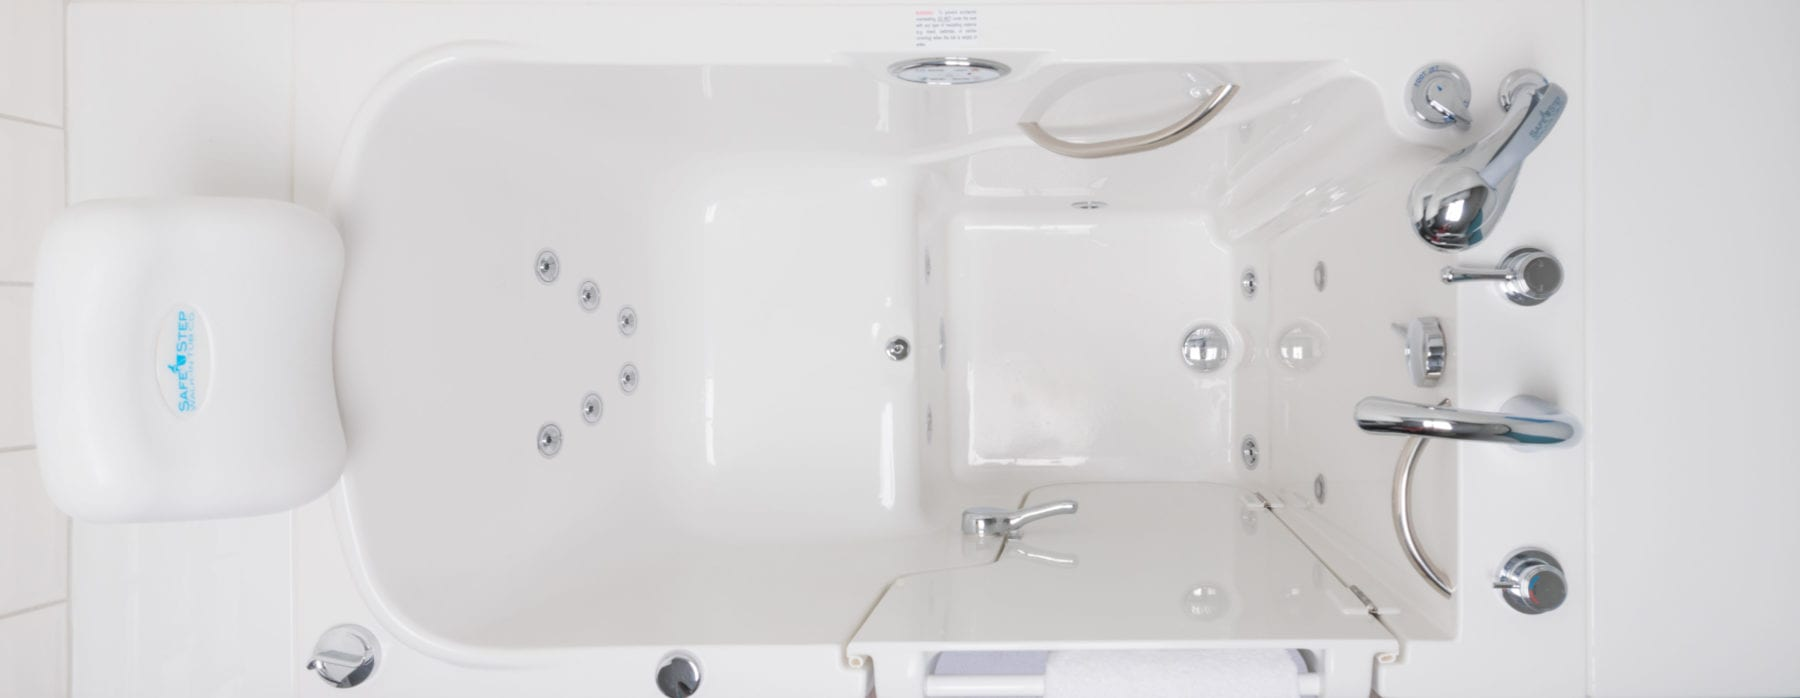 safe-step-walk-in-tub-overhead